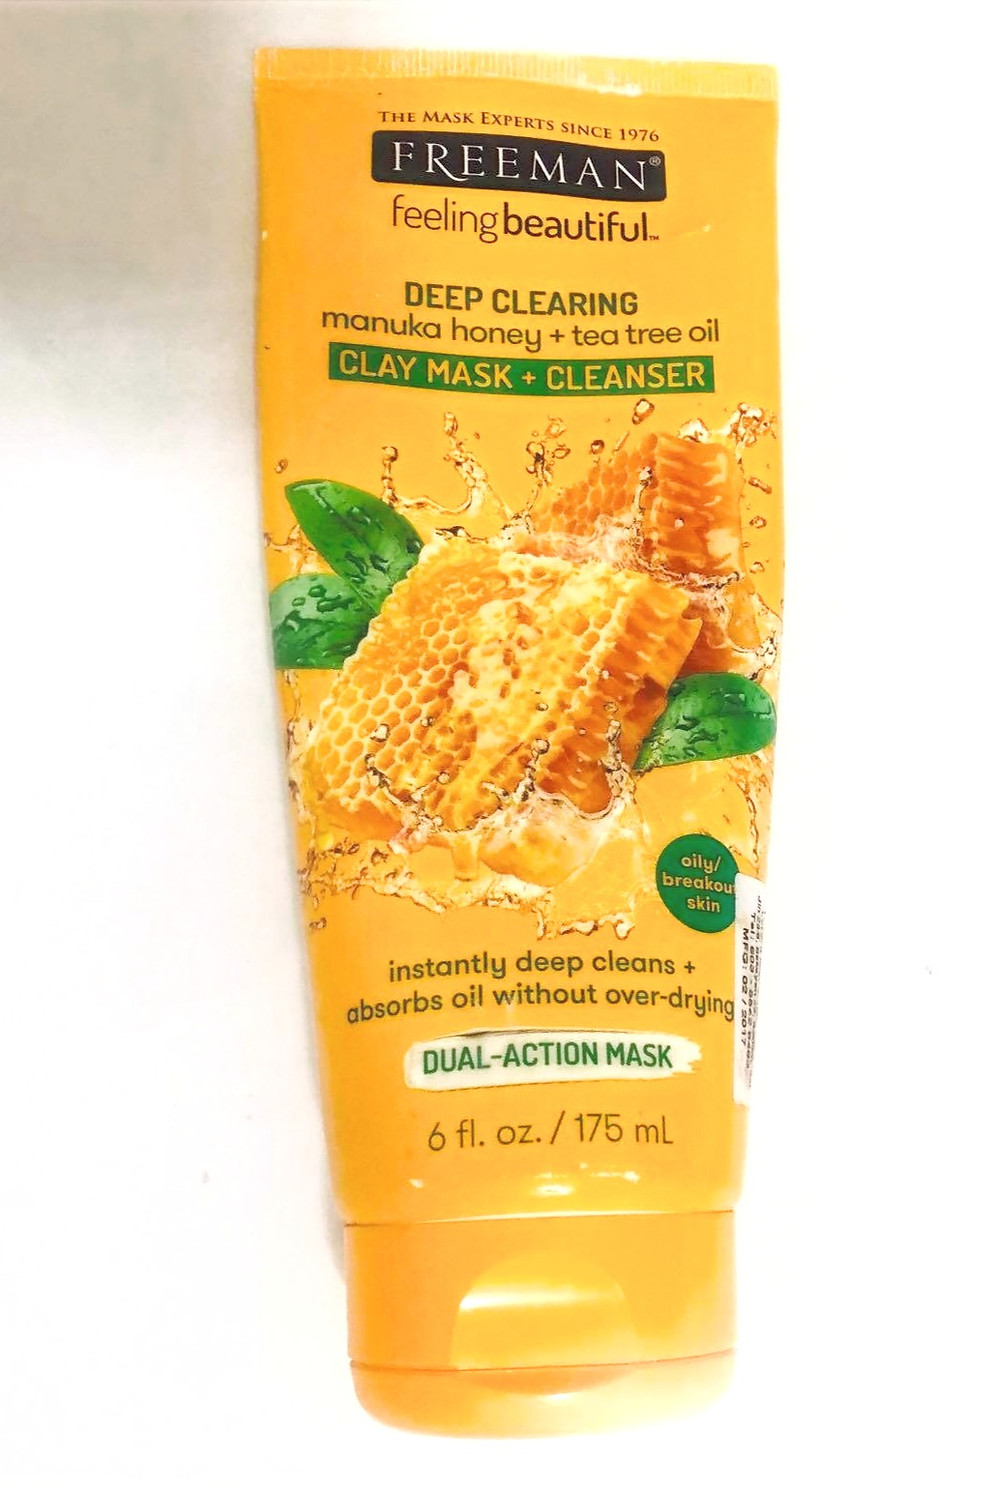 DEEP CLEARING manuka honey + tea tree oil CLAY MASK + CLEANSER